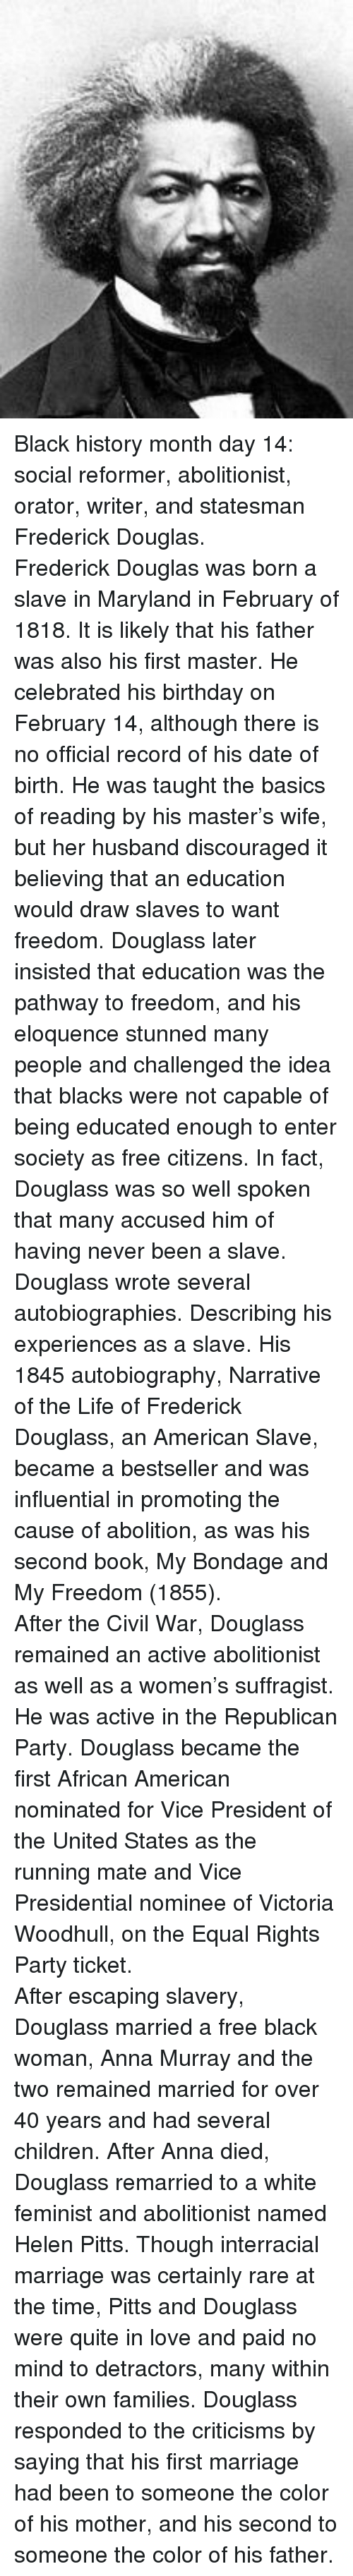 Autobiography: <p>Black history month day 14: social reformer, abolitionist, orator, writer, and statesman Frederick Douglas.</p>  <p>Frederick Douglas was born a slave in Maryland in February of 1818. It is likely that his father was also his first master. He celebrated his birthday on February 14, although there is no official record of his date of birth. He was taught the basics of reading by his master&rsquo;s wife, but her husband discouraged it believing that an education would draw slaves to want freedom. Douglass later insisted that education was the pathway to freedom, and his eloquence stunned many people and challenged the idea that blacks were not capable of being educated enough to enter society as free citizens. In fact, Douglass was so well spoken that many accused him of having never been a slave.</p>  <p>Douglass wrote several autobiographies. Describing his experiences as a slave. His 1845 autobiography, Narrative of the Life of Frederick Douglass, an American Slave, became a bestseller and was influential in promoting the cause of abolition, as was his second book, My Bondage and My Freedom (1855). </p>  <p>After the Civil War, Douglass remained an active abolitionist as well as a women&rsquo;s suffragist. He was active in the Republican Party. Douglass became the first African American nominated for Vice President of the United States as the running mate and Vice Presidential nominee of Victoria Woodhull, on the Equal Rights Party ticket. </p>  <p>After escaping slavery, Douglass married a free black woman, Anna Murray and the two remained married for over 40 years and had several children. After Anna died, Douglass remarried to a white feminist and abolitionist named Helen Pitts. Though interracial marriage was certainly rare at the time, Pitts and Douglass were quite in love and paid no mind to detractors, many within their own families. Douglass responded to the criticisms by saying that his first marriage had been to someone the color of his 